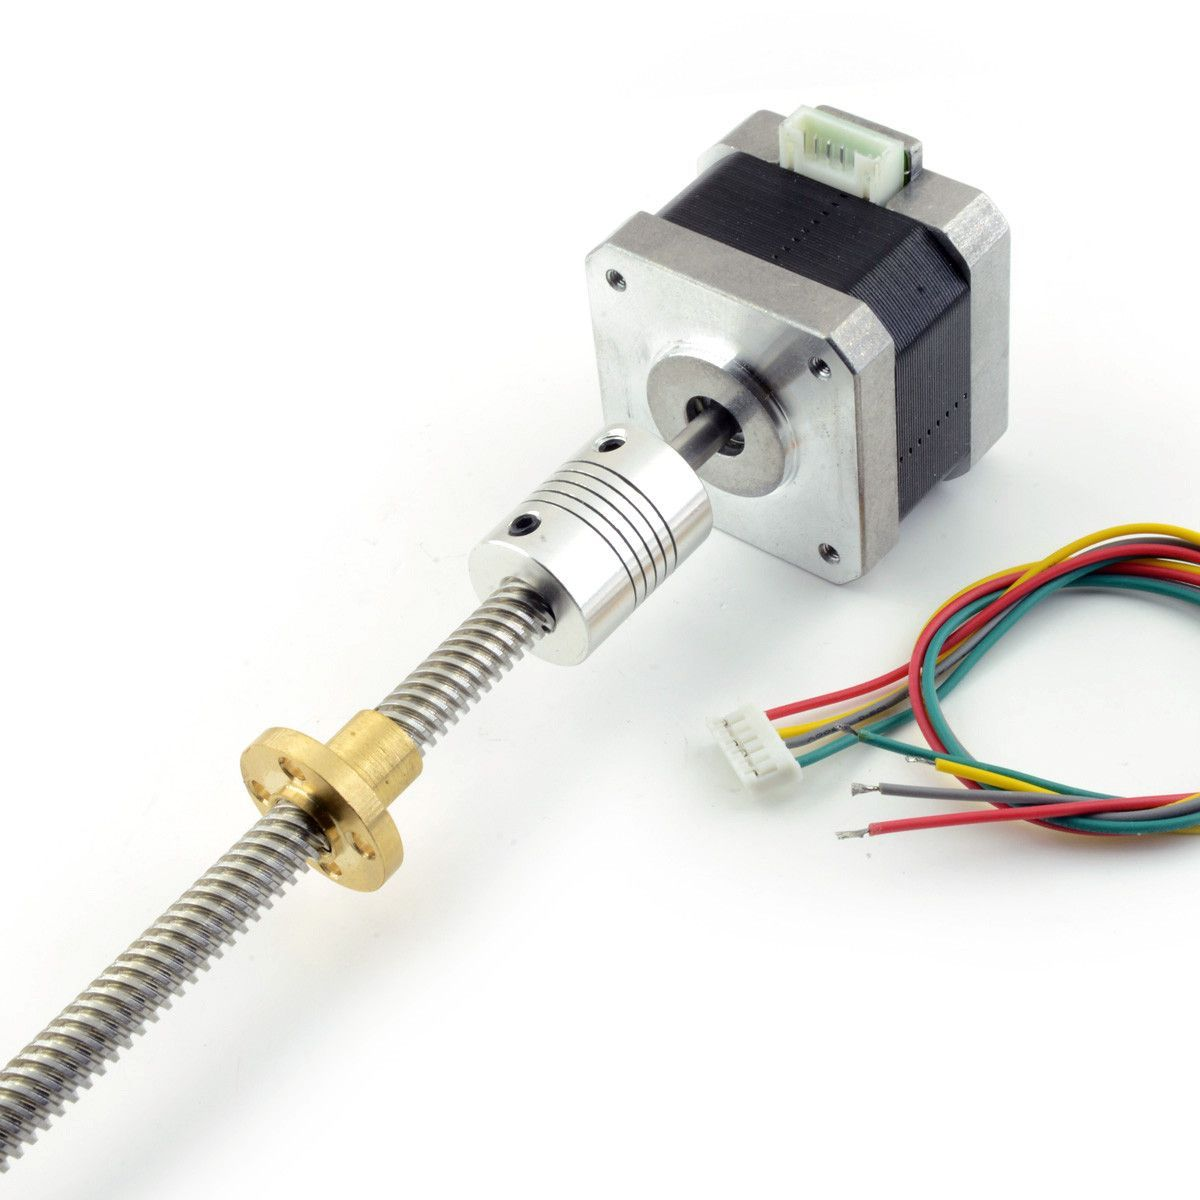 Nema 17 stepper motor with 300mm tr8x8 lead screw and for Nema 17 stepper motor datasheet